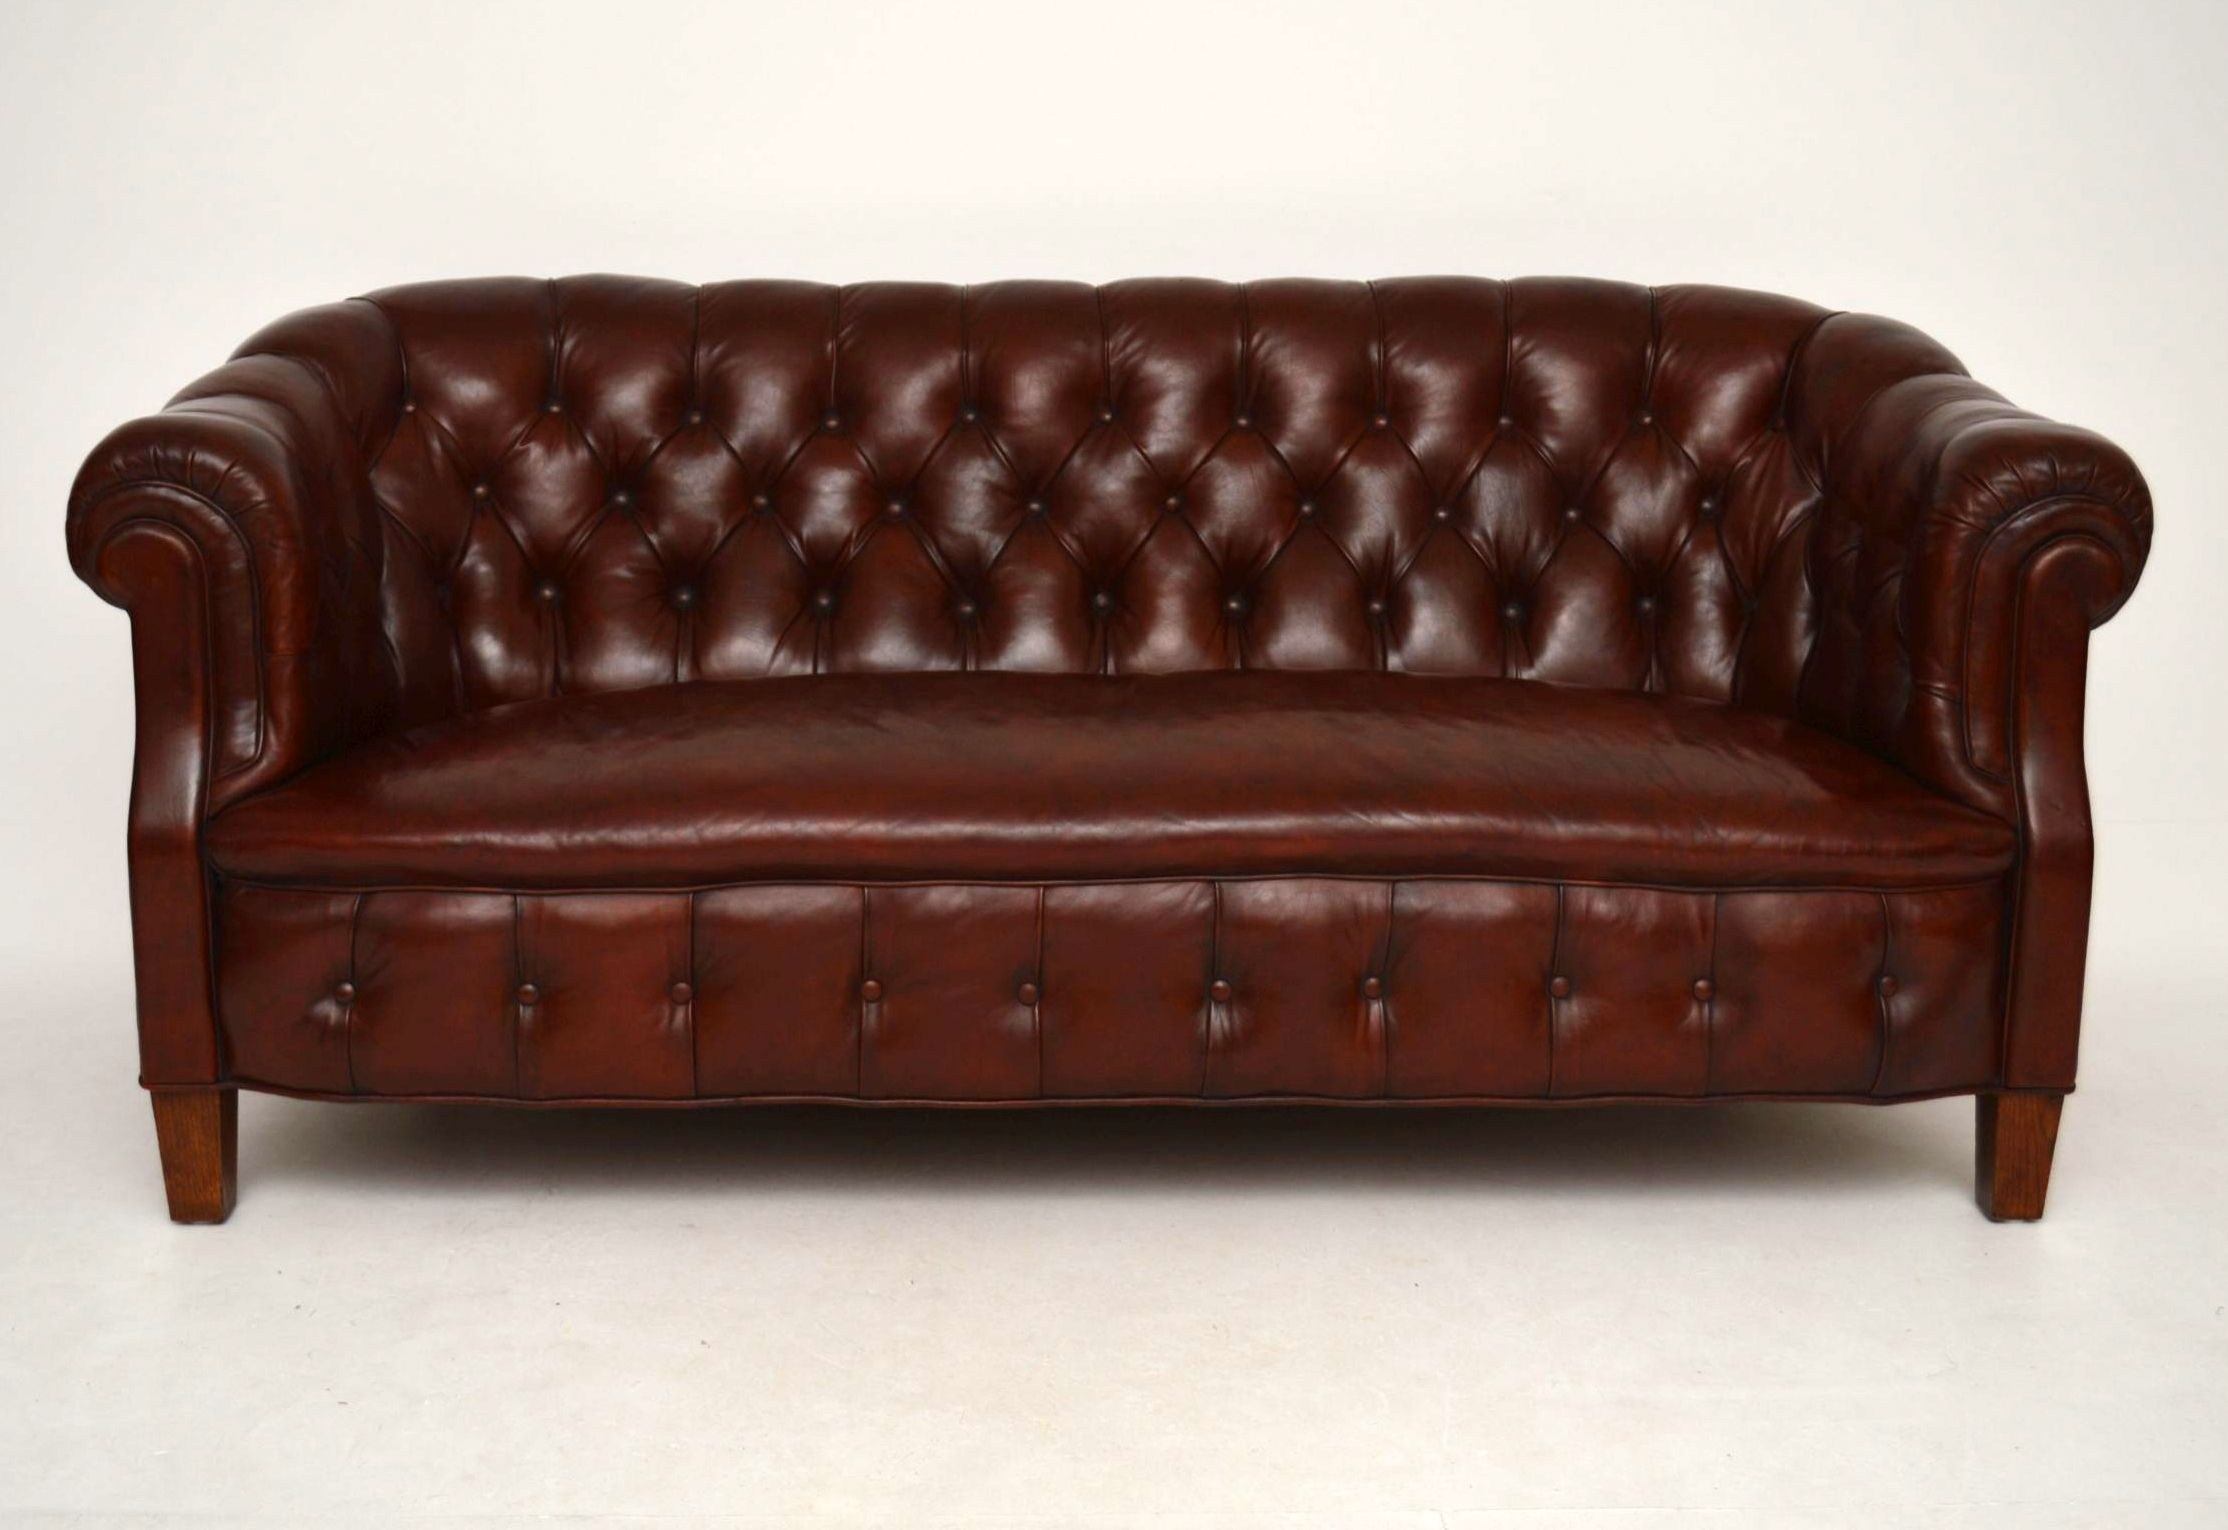 Chesterfield Sofa Wiesbaden Antikes Swedish Leather Chesterfield Sofa